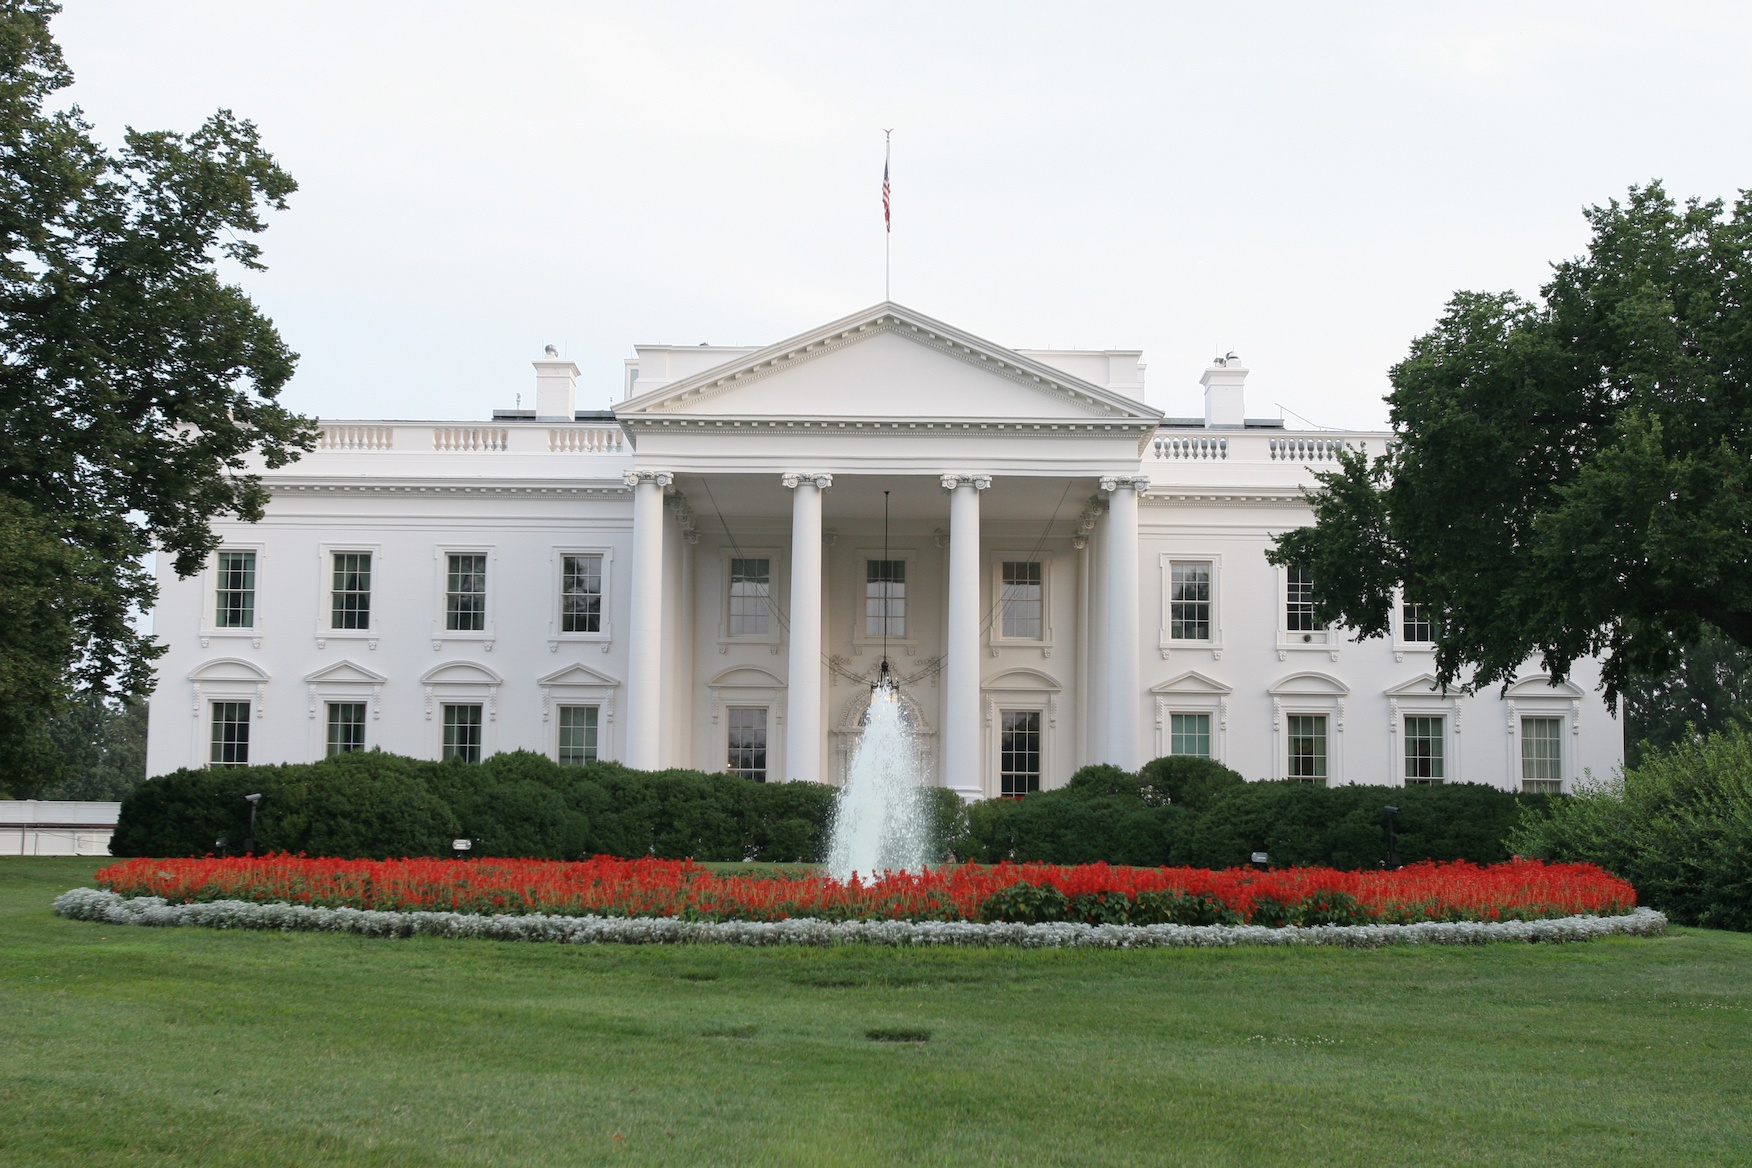 The White House in Washington, D.C.